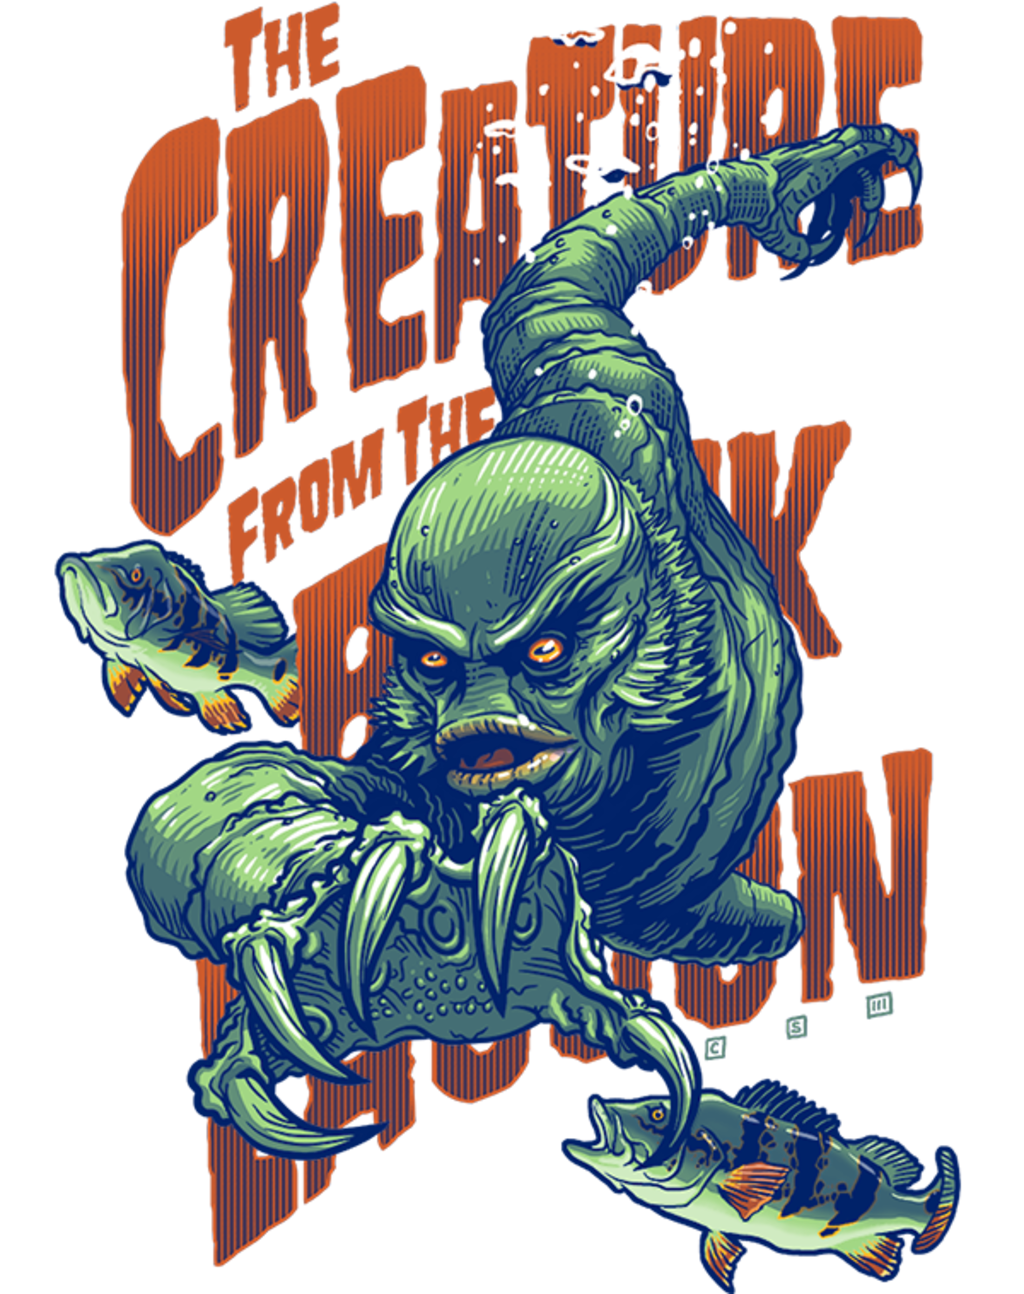 teeVillain: The Creature Returns